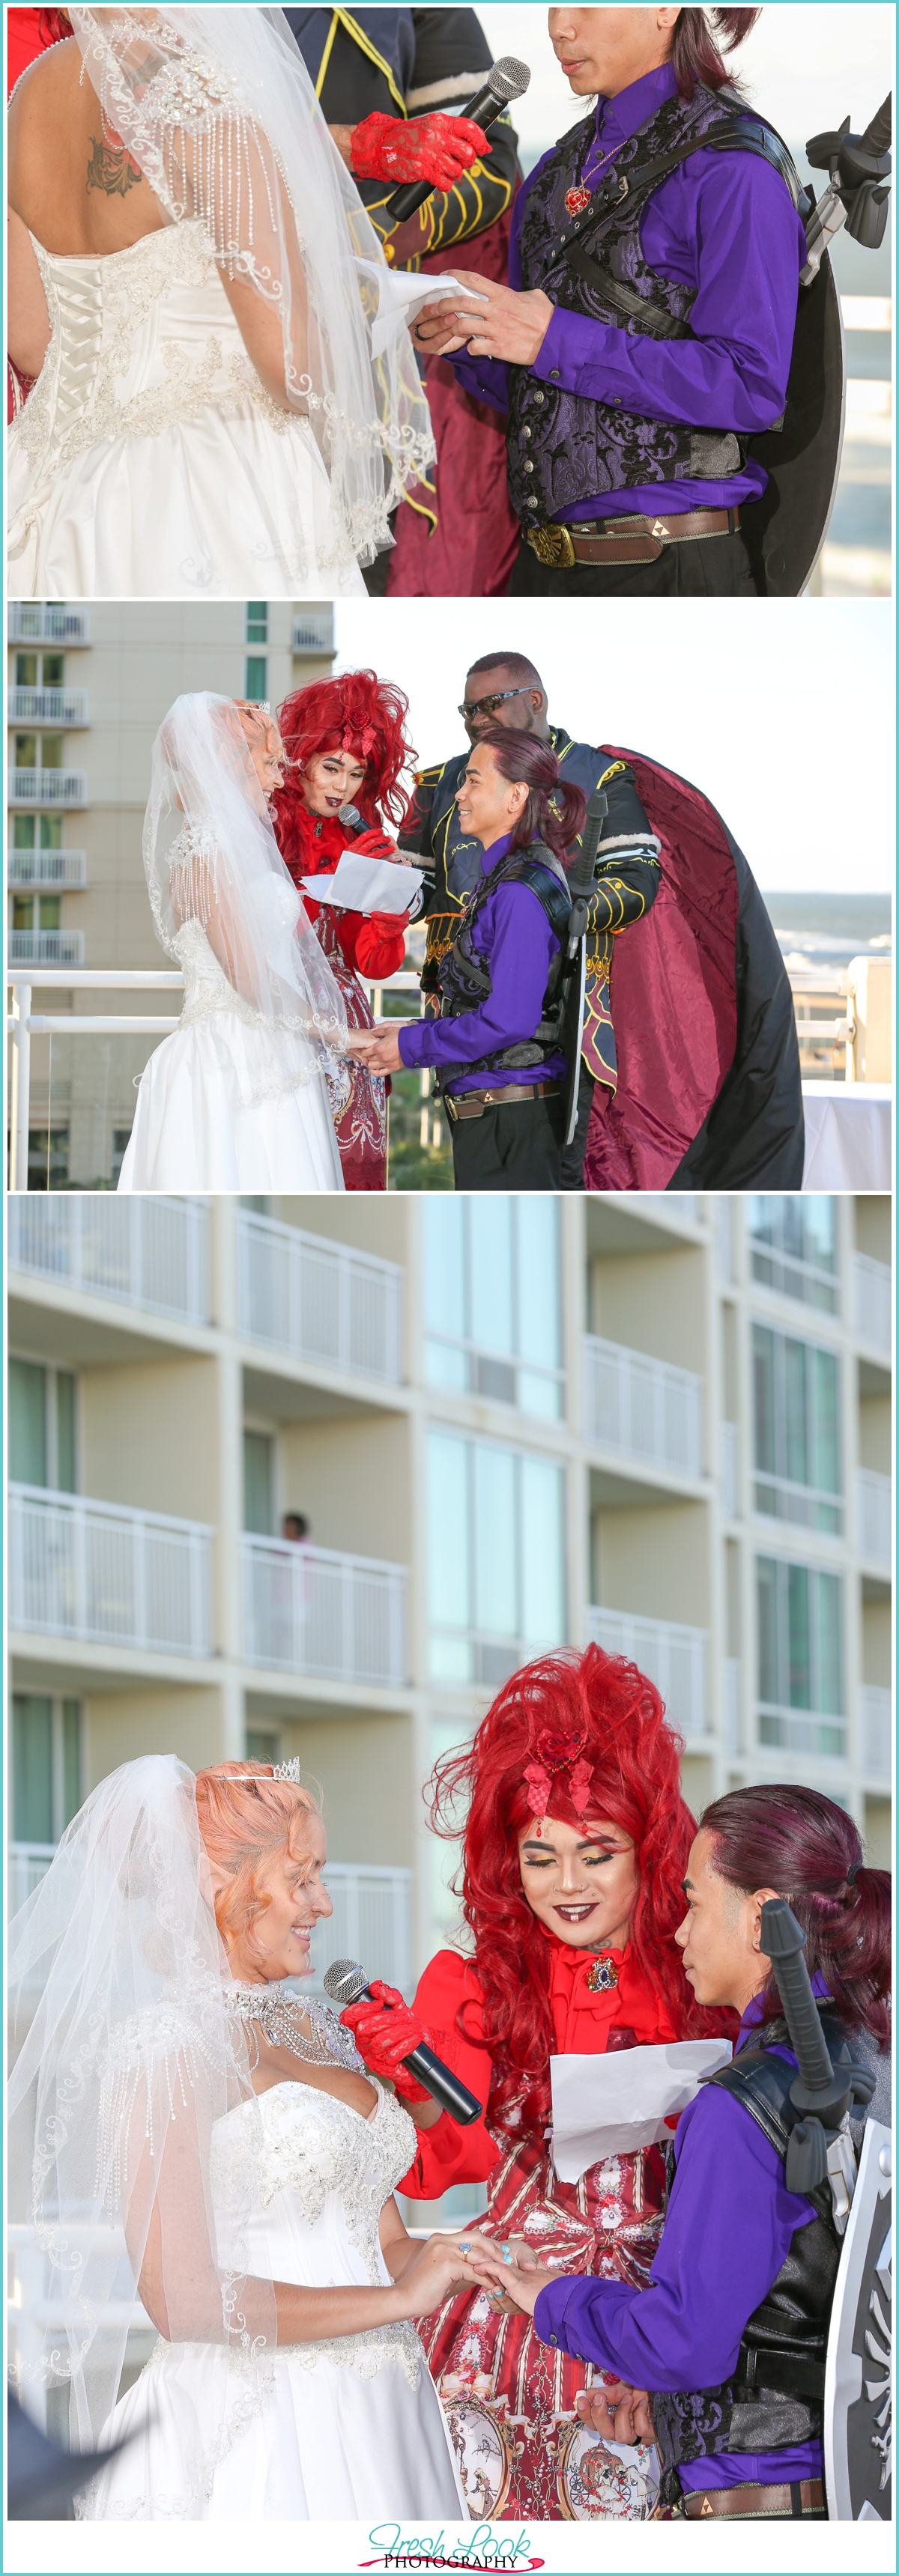 special moments during the wedding ceremony